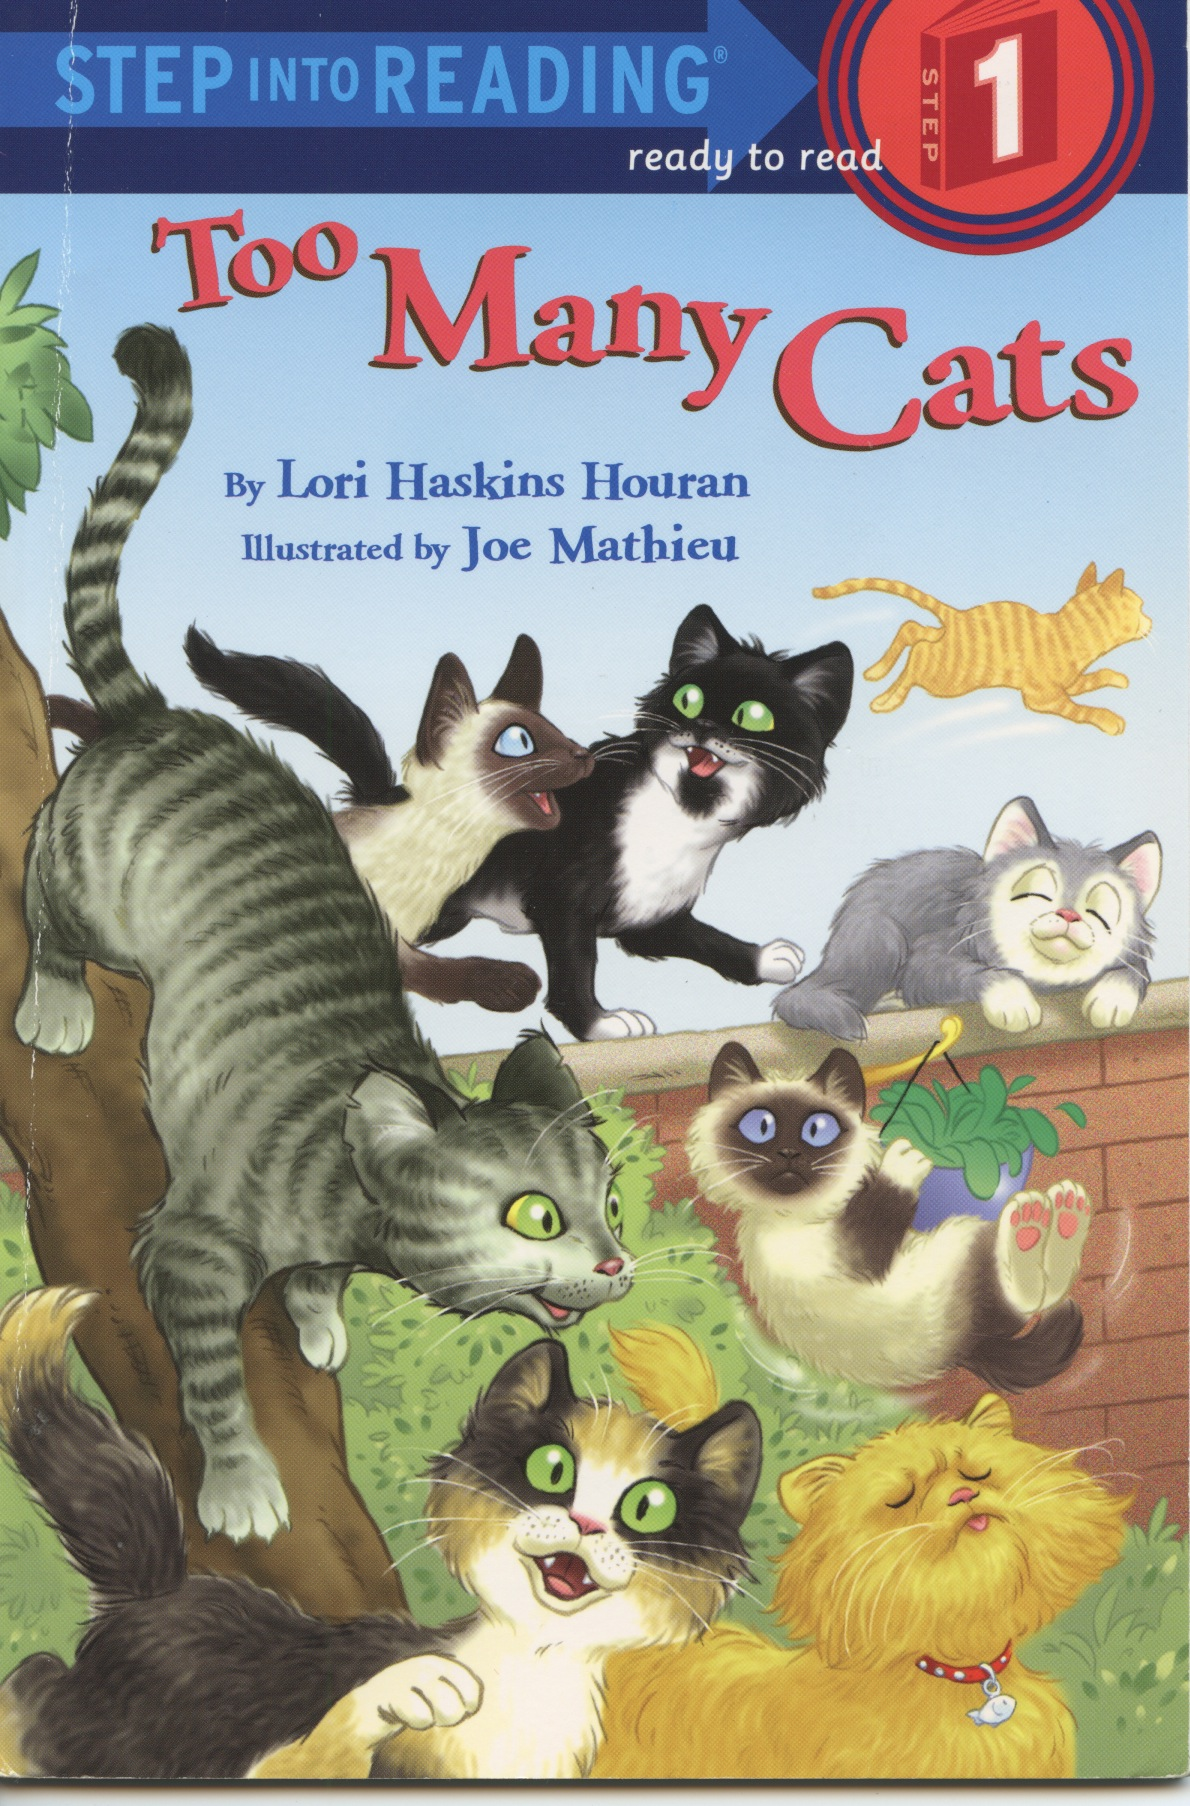 Cats 2 cover.jpeg